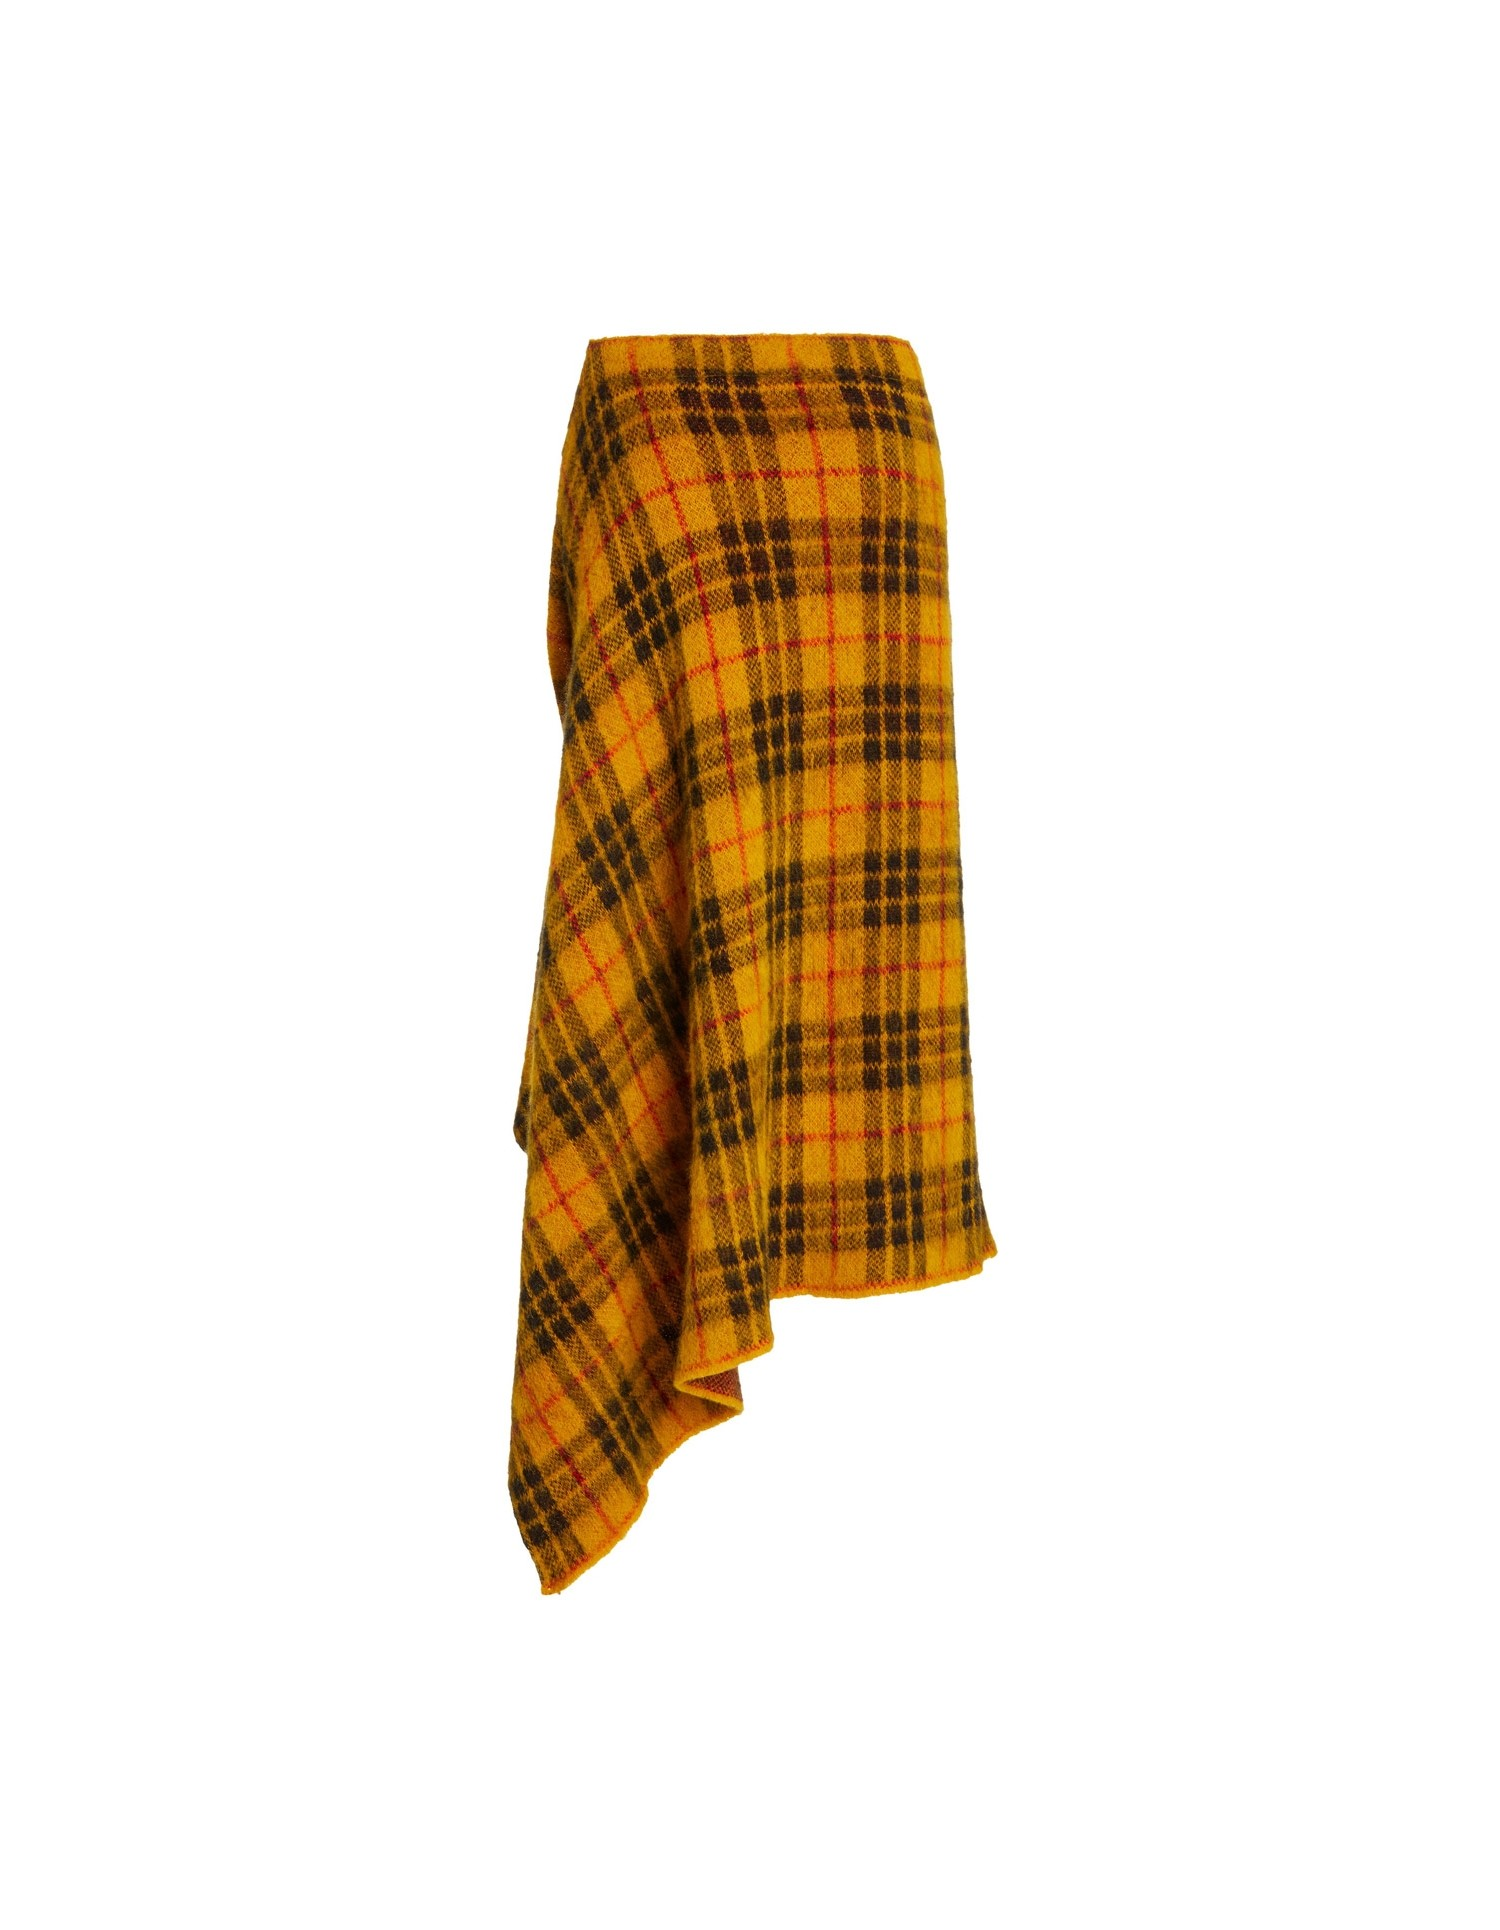 MONSE Tartan Mohair Skirt in Mustard Multi Flat Back